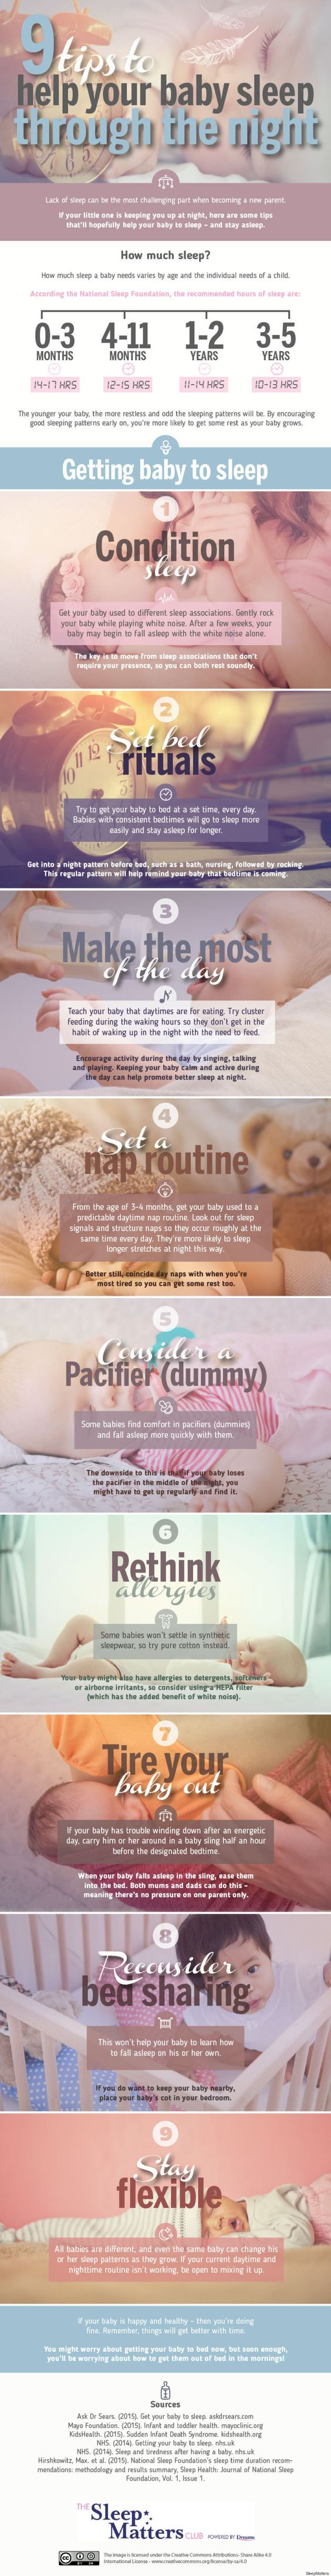 9 tips to help your baby sleep through the night by @HuffPostParents